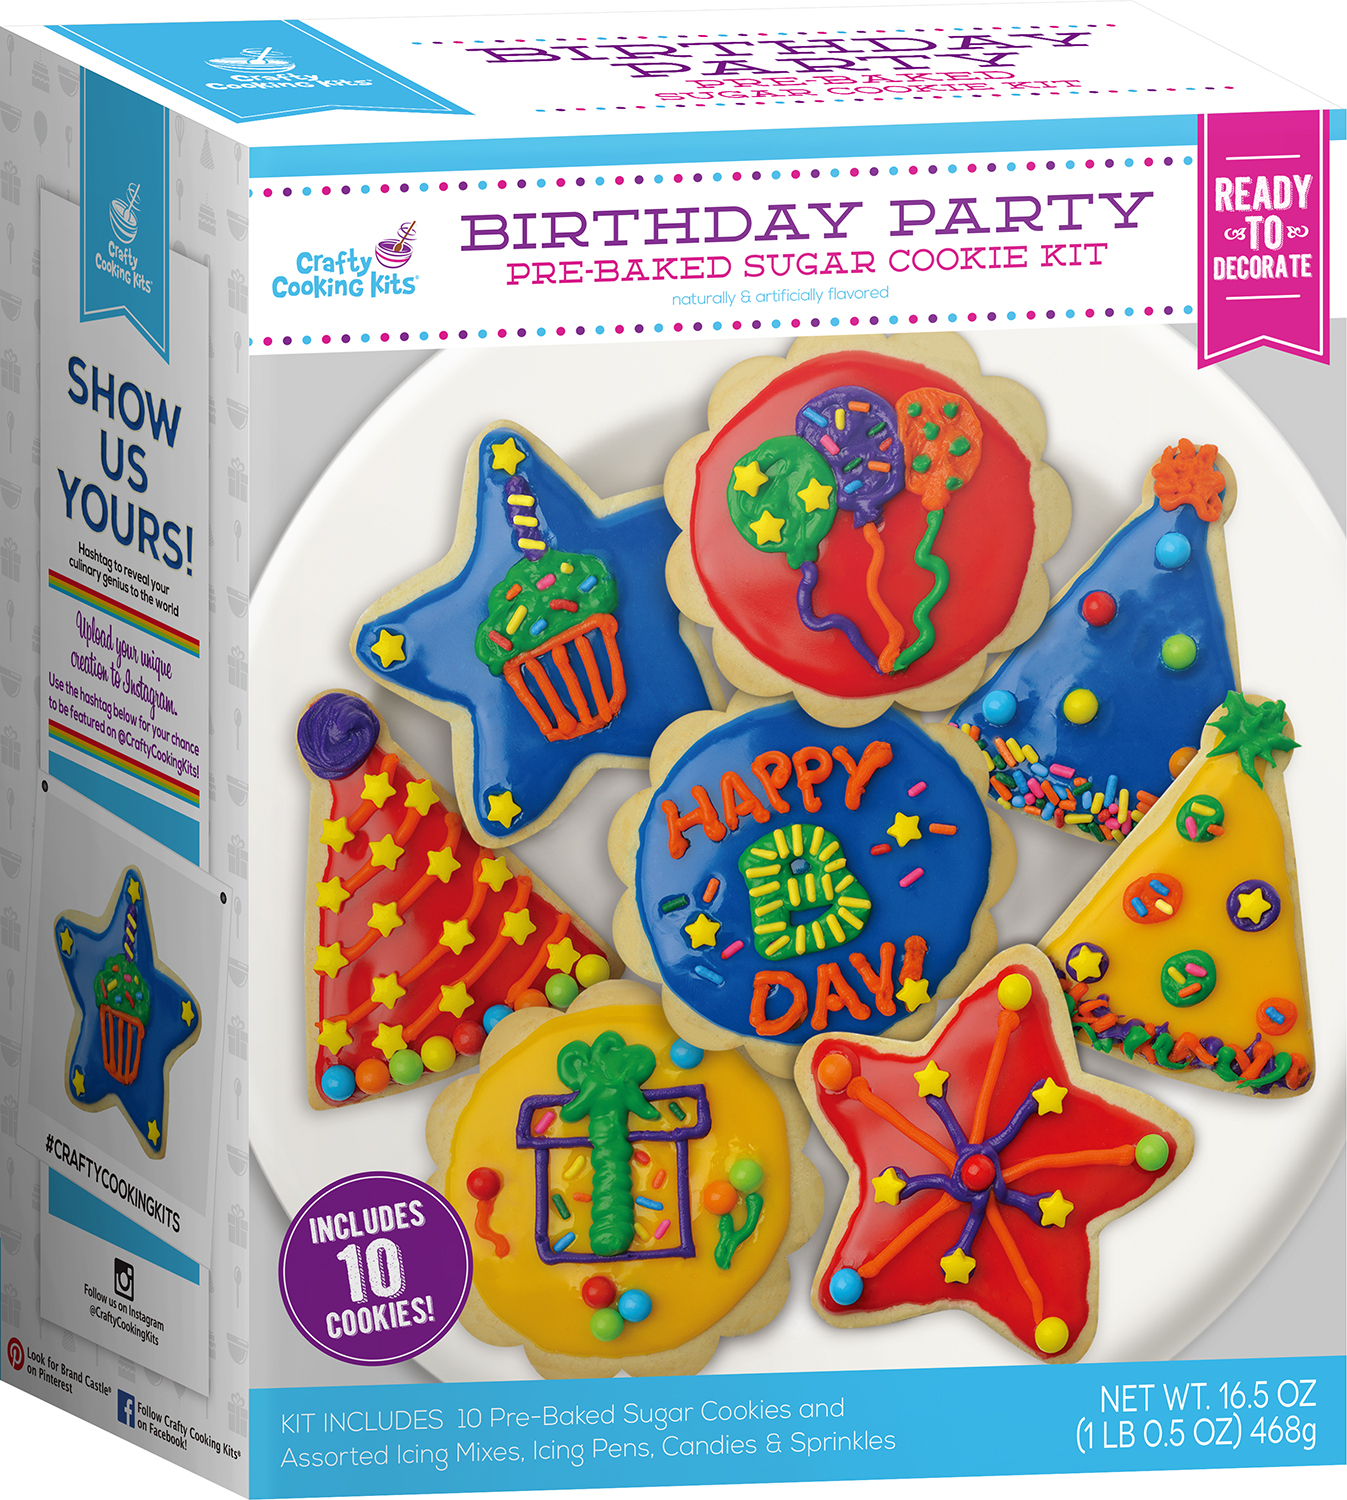 Other Baking Accessories Home & Garden Crafty Cooking Kits Gingerbread Cookie Jar Decorating Kit !!